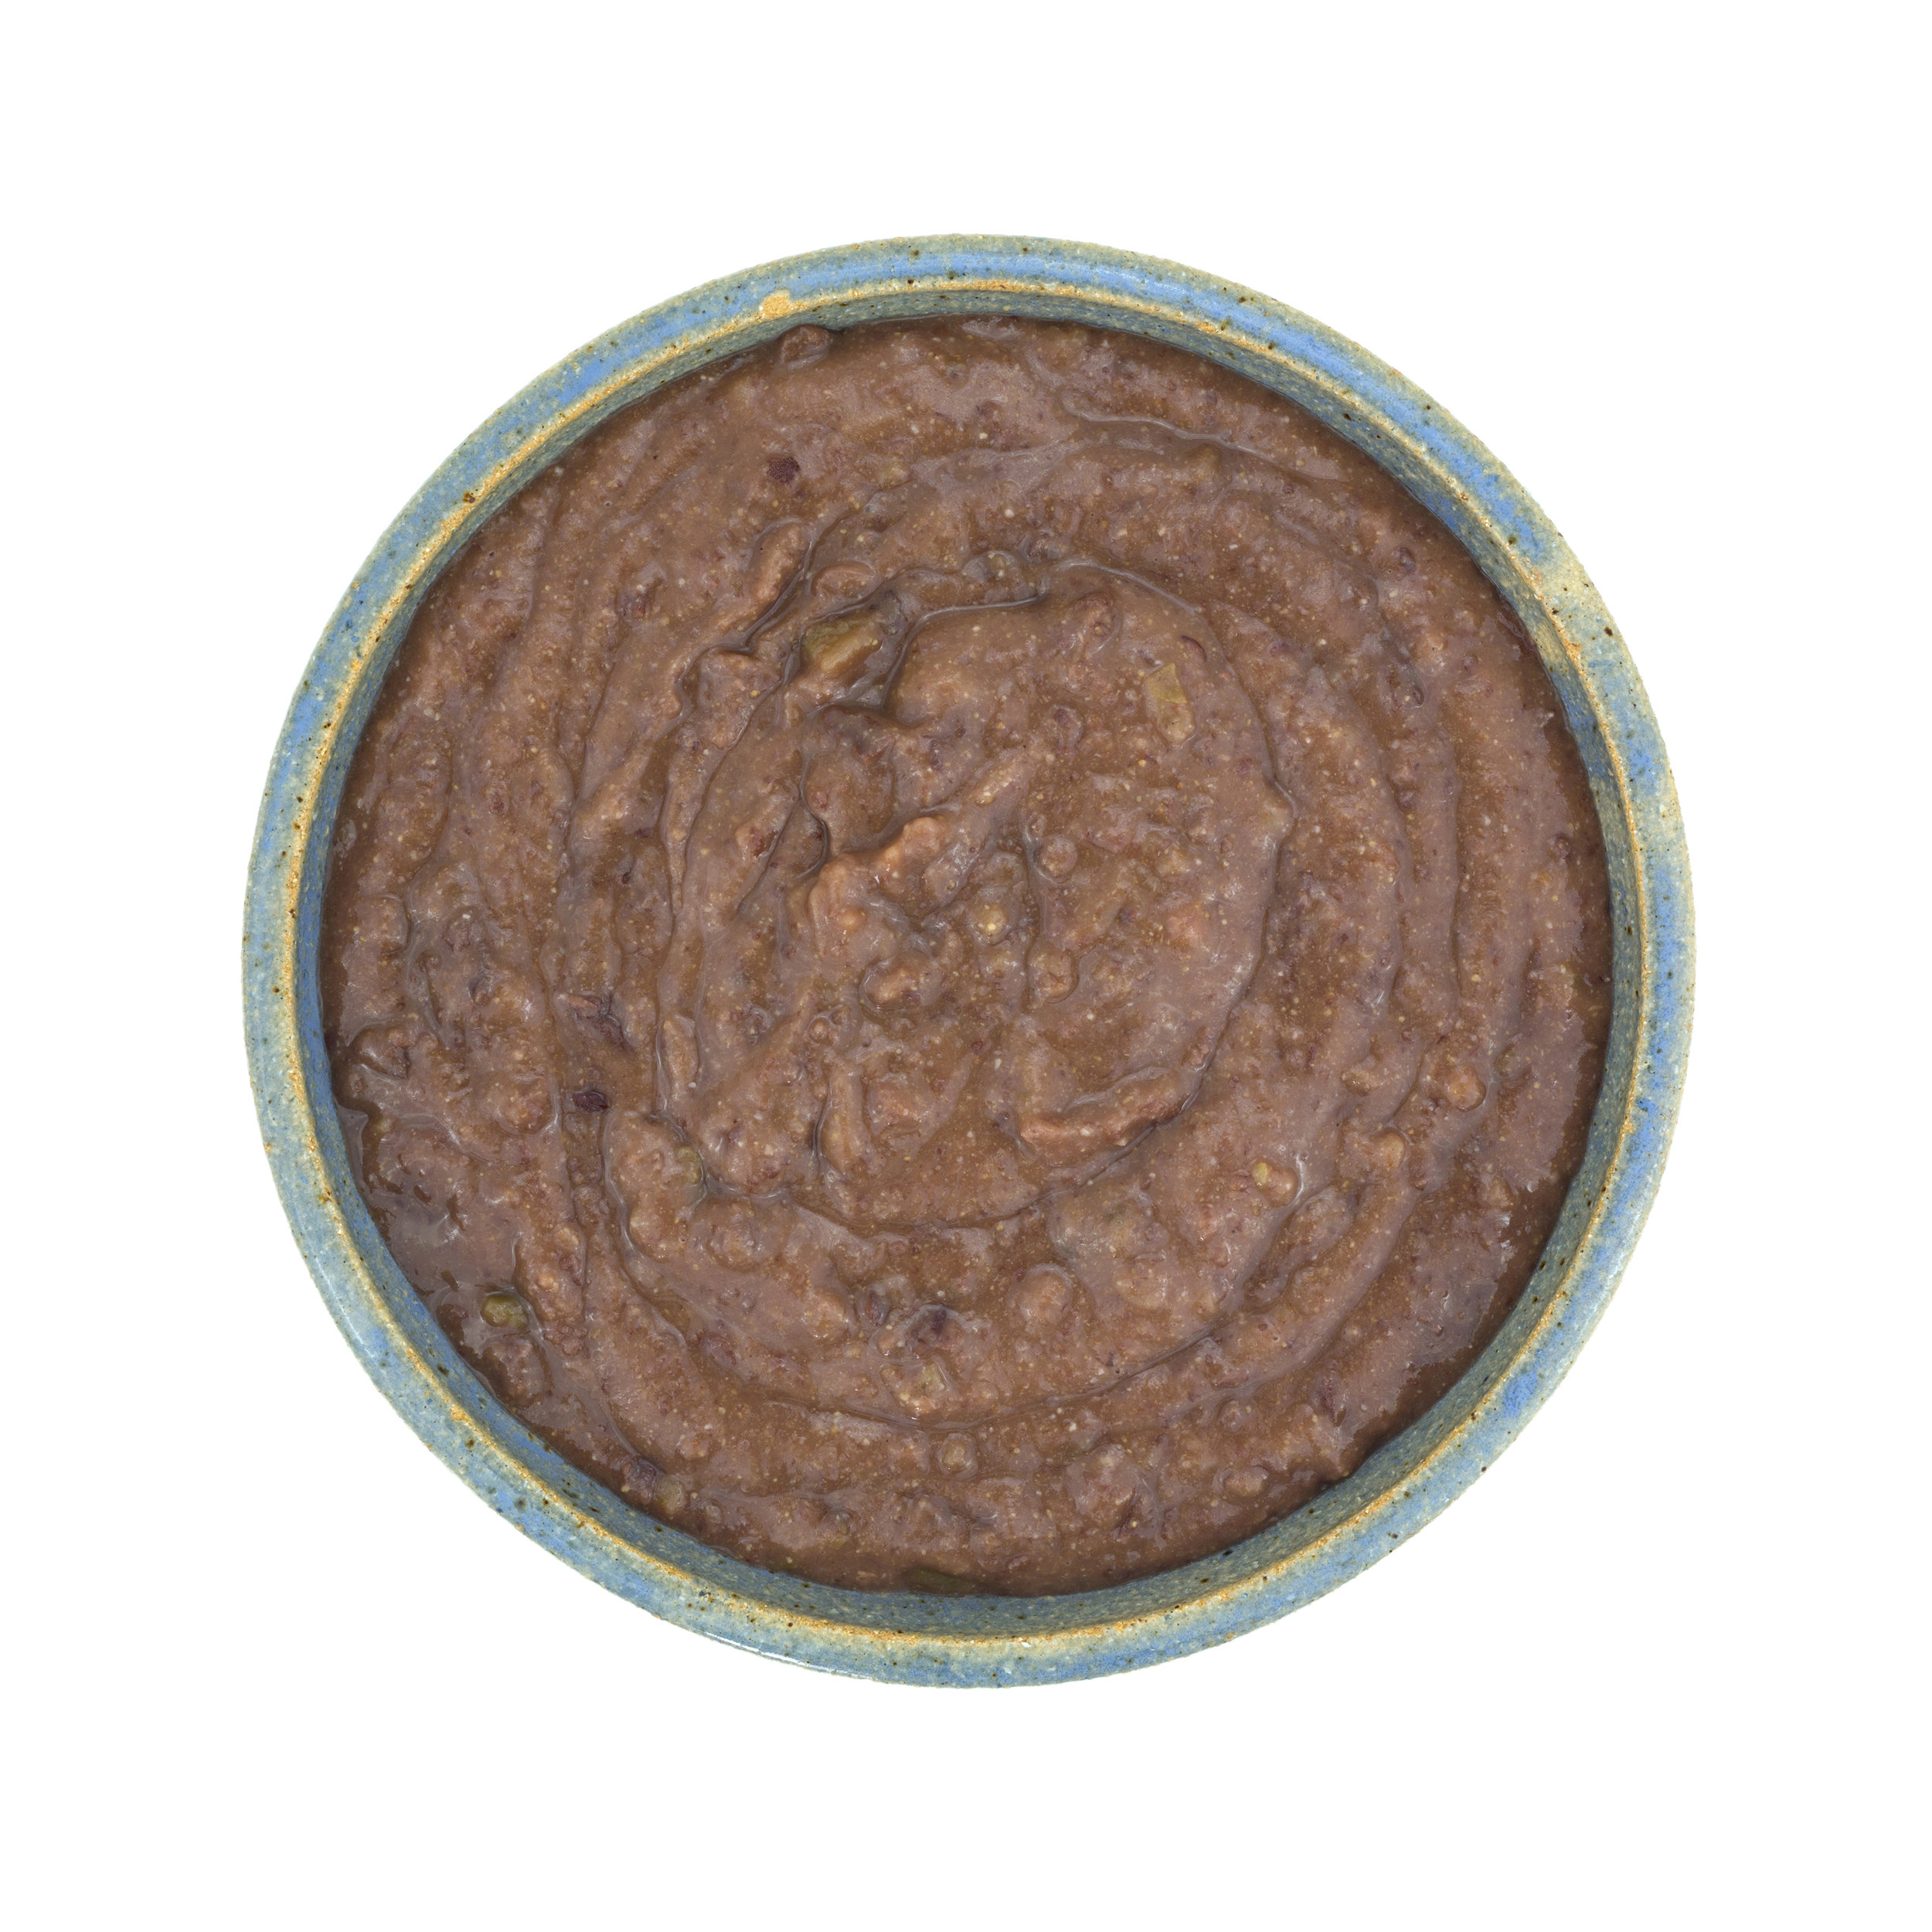 My latest batch of LFA Black Bean dip is in the freezer until tomorrow, so you'll have to settle for this Shutterstock stock photo instead :)